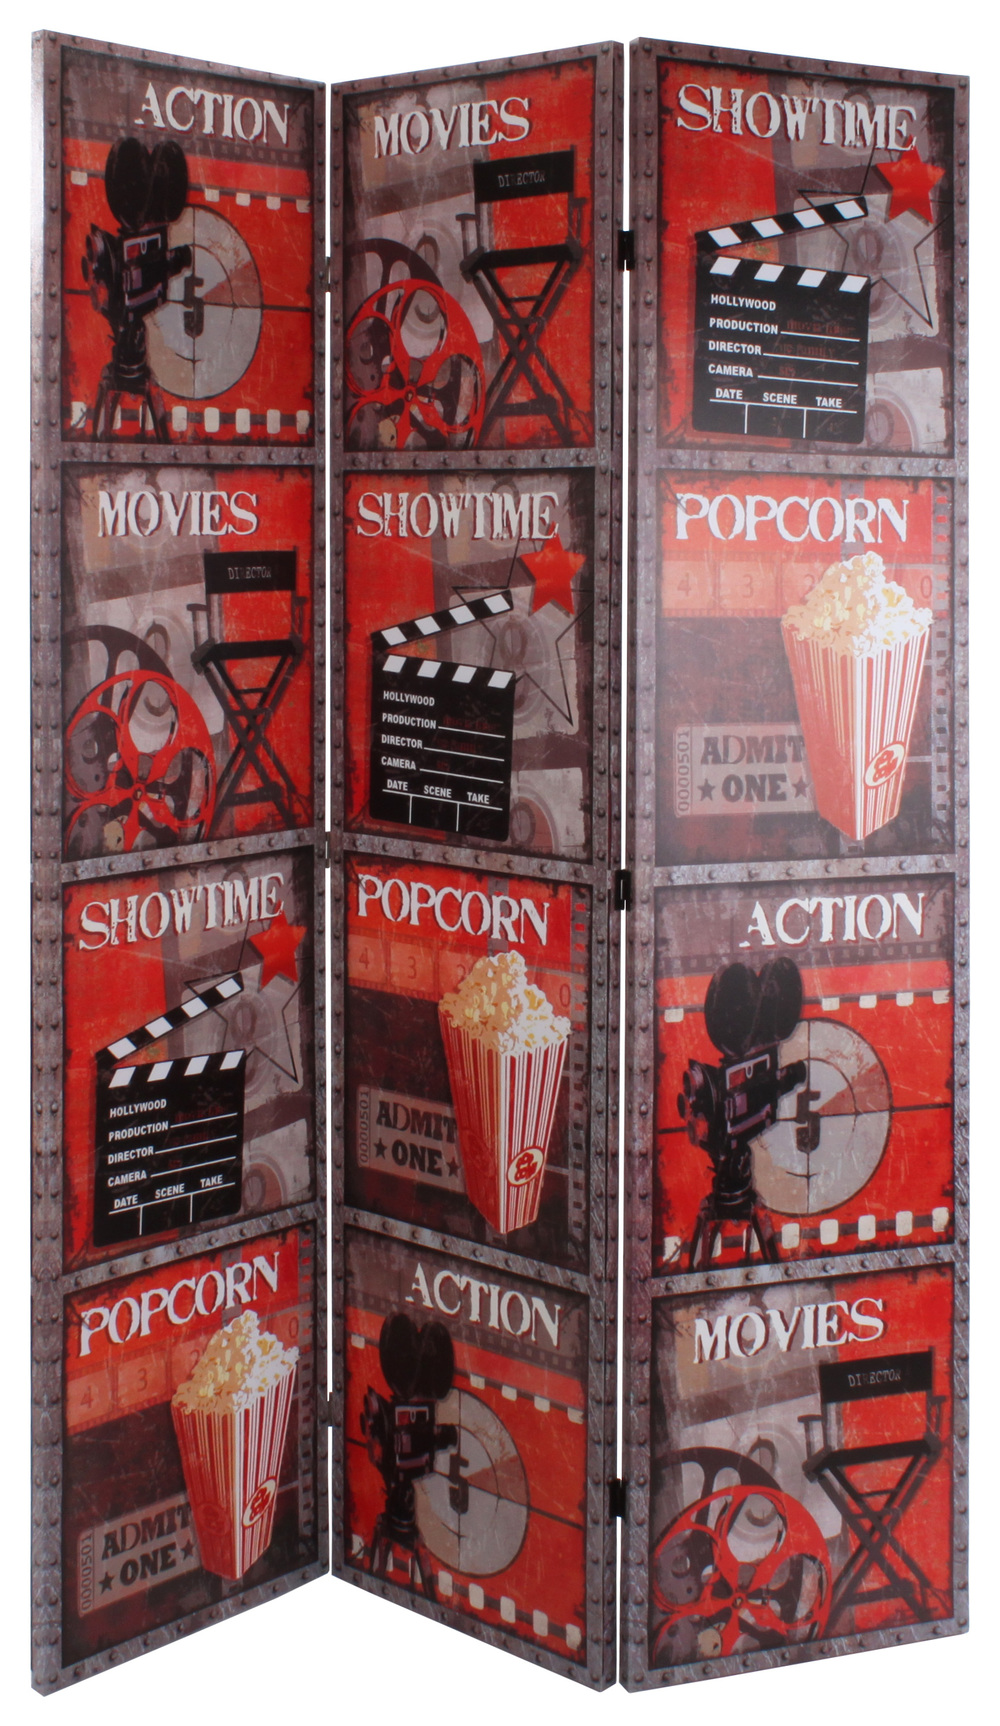 €110 PRINTED CANVAS SCREEN W/ MOVIES DESIGN 120X2X180 (DOUBLE FACE)